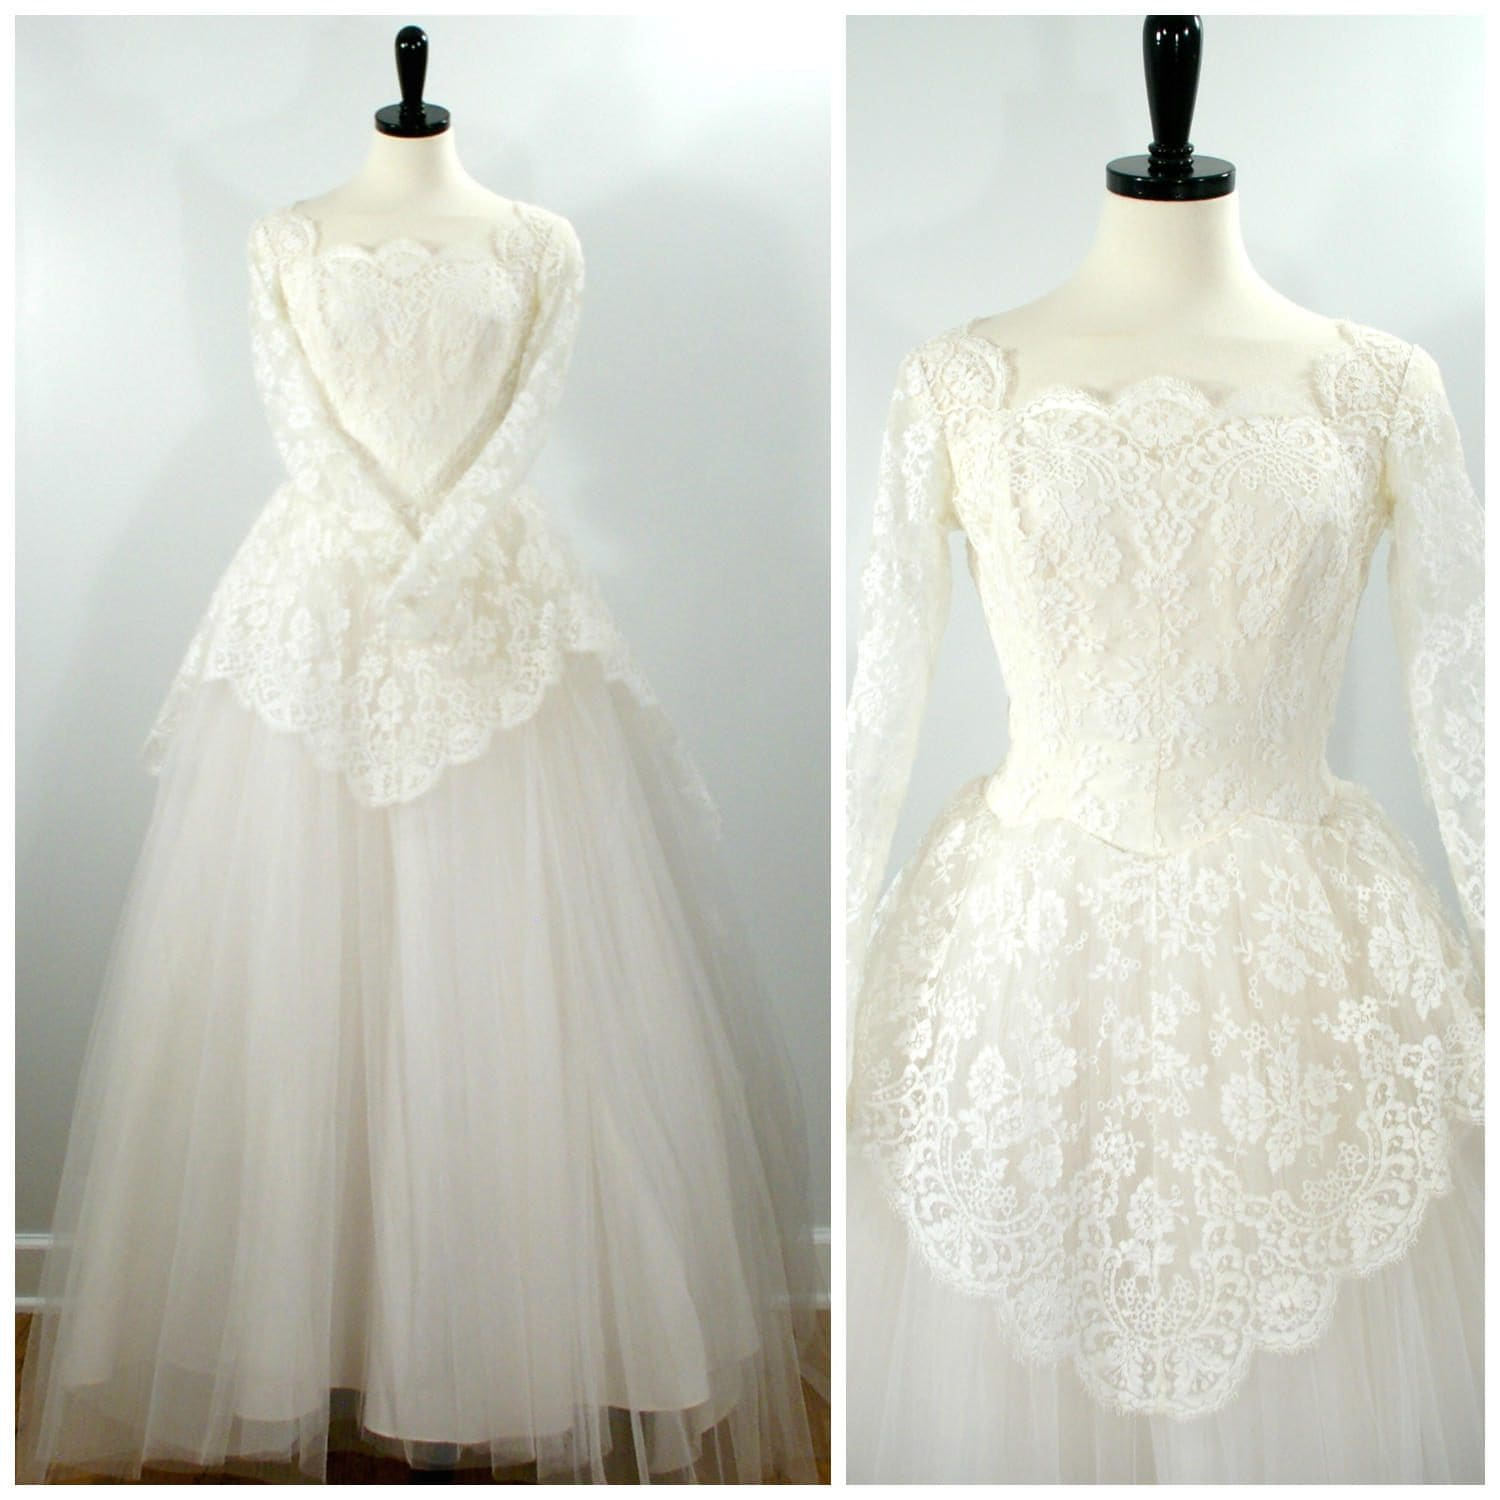 Vintage 1950s wedding dress chantilly lace and tulle wedding for Chantilly lace wedding dress